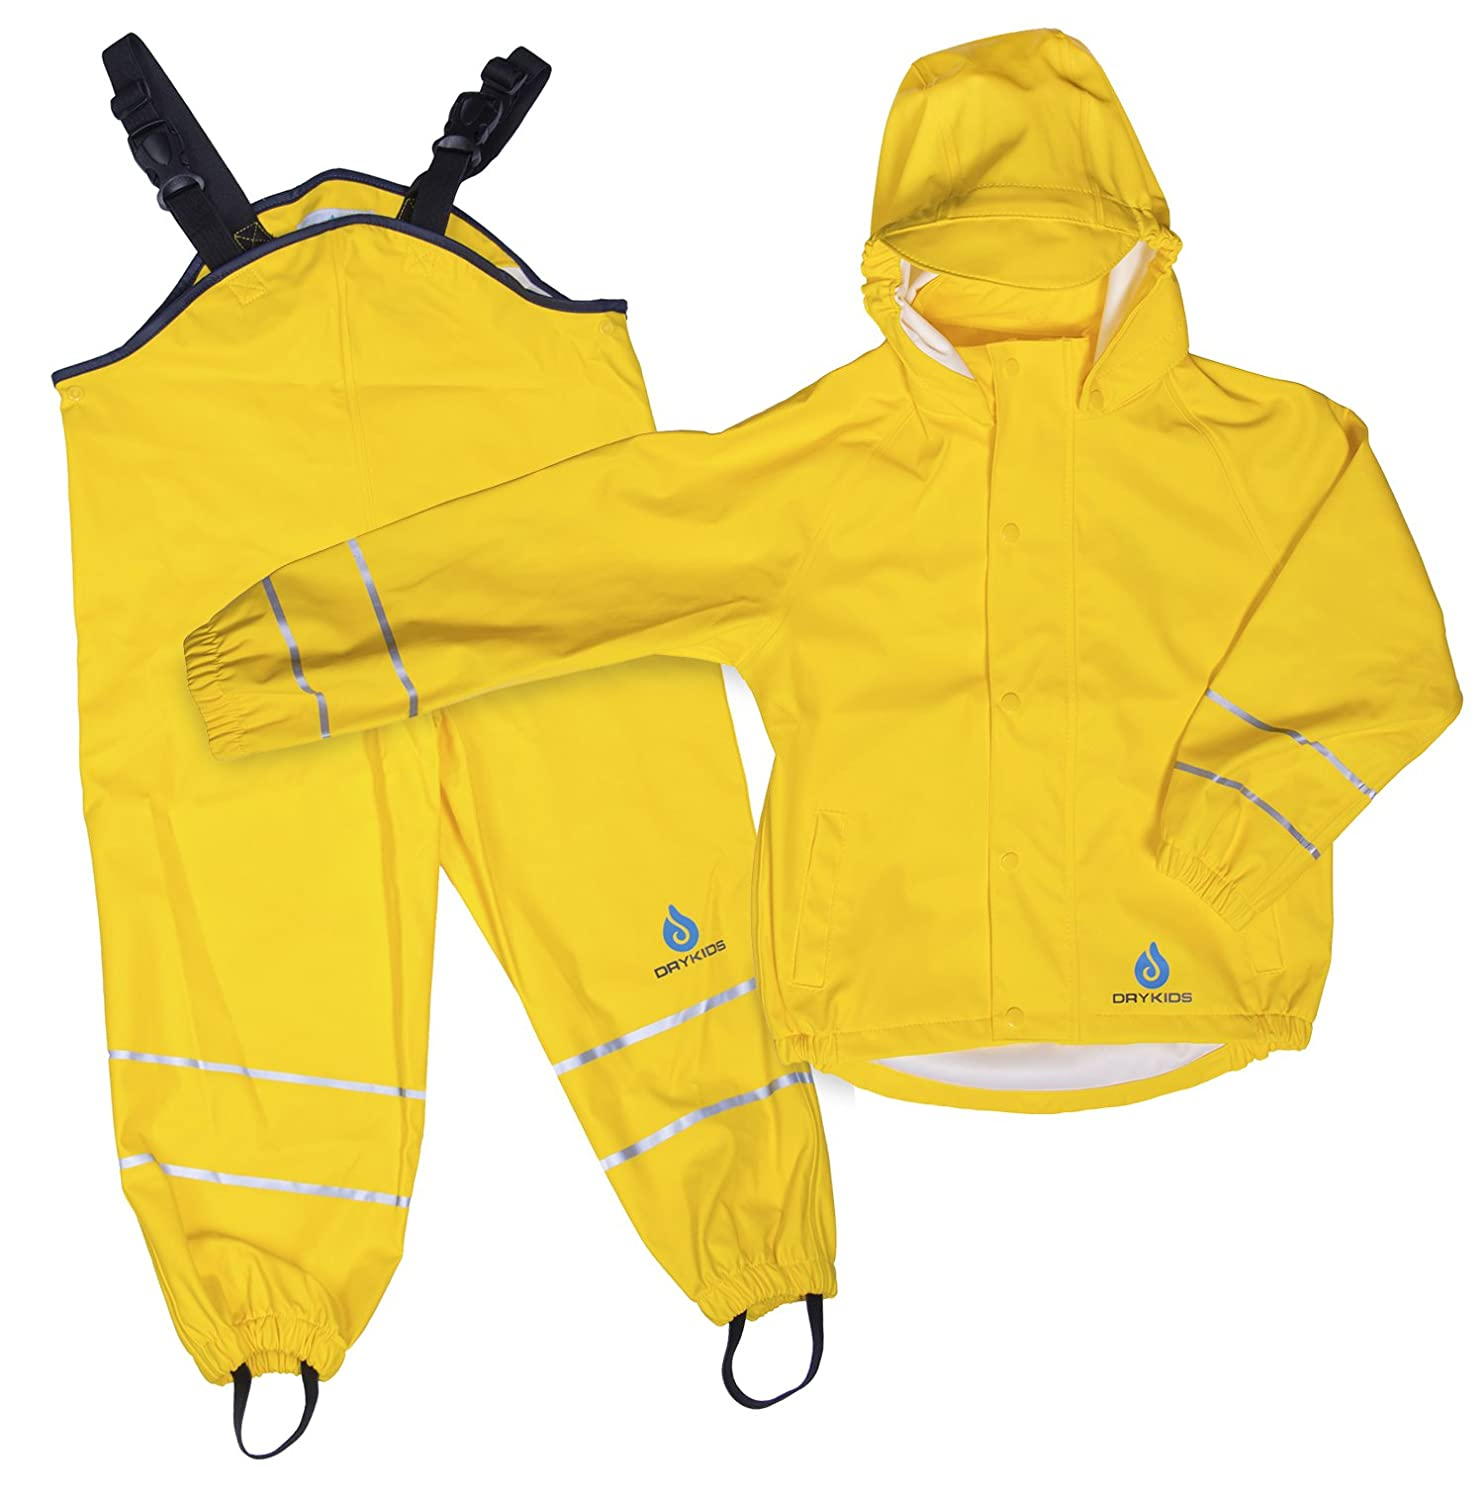 6207685f8233 DRY KIDS Childrens Waterproof Jacket and Dungarees Set PU Coated ...